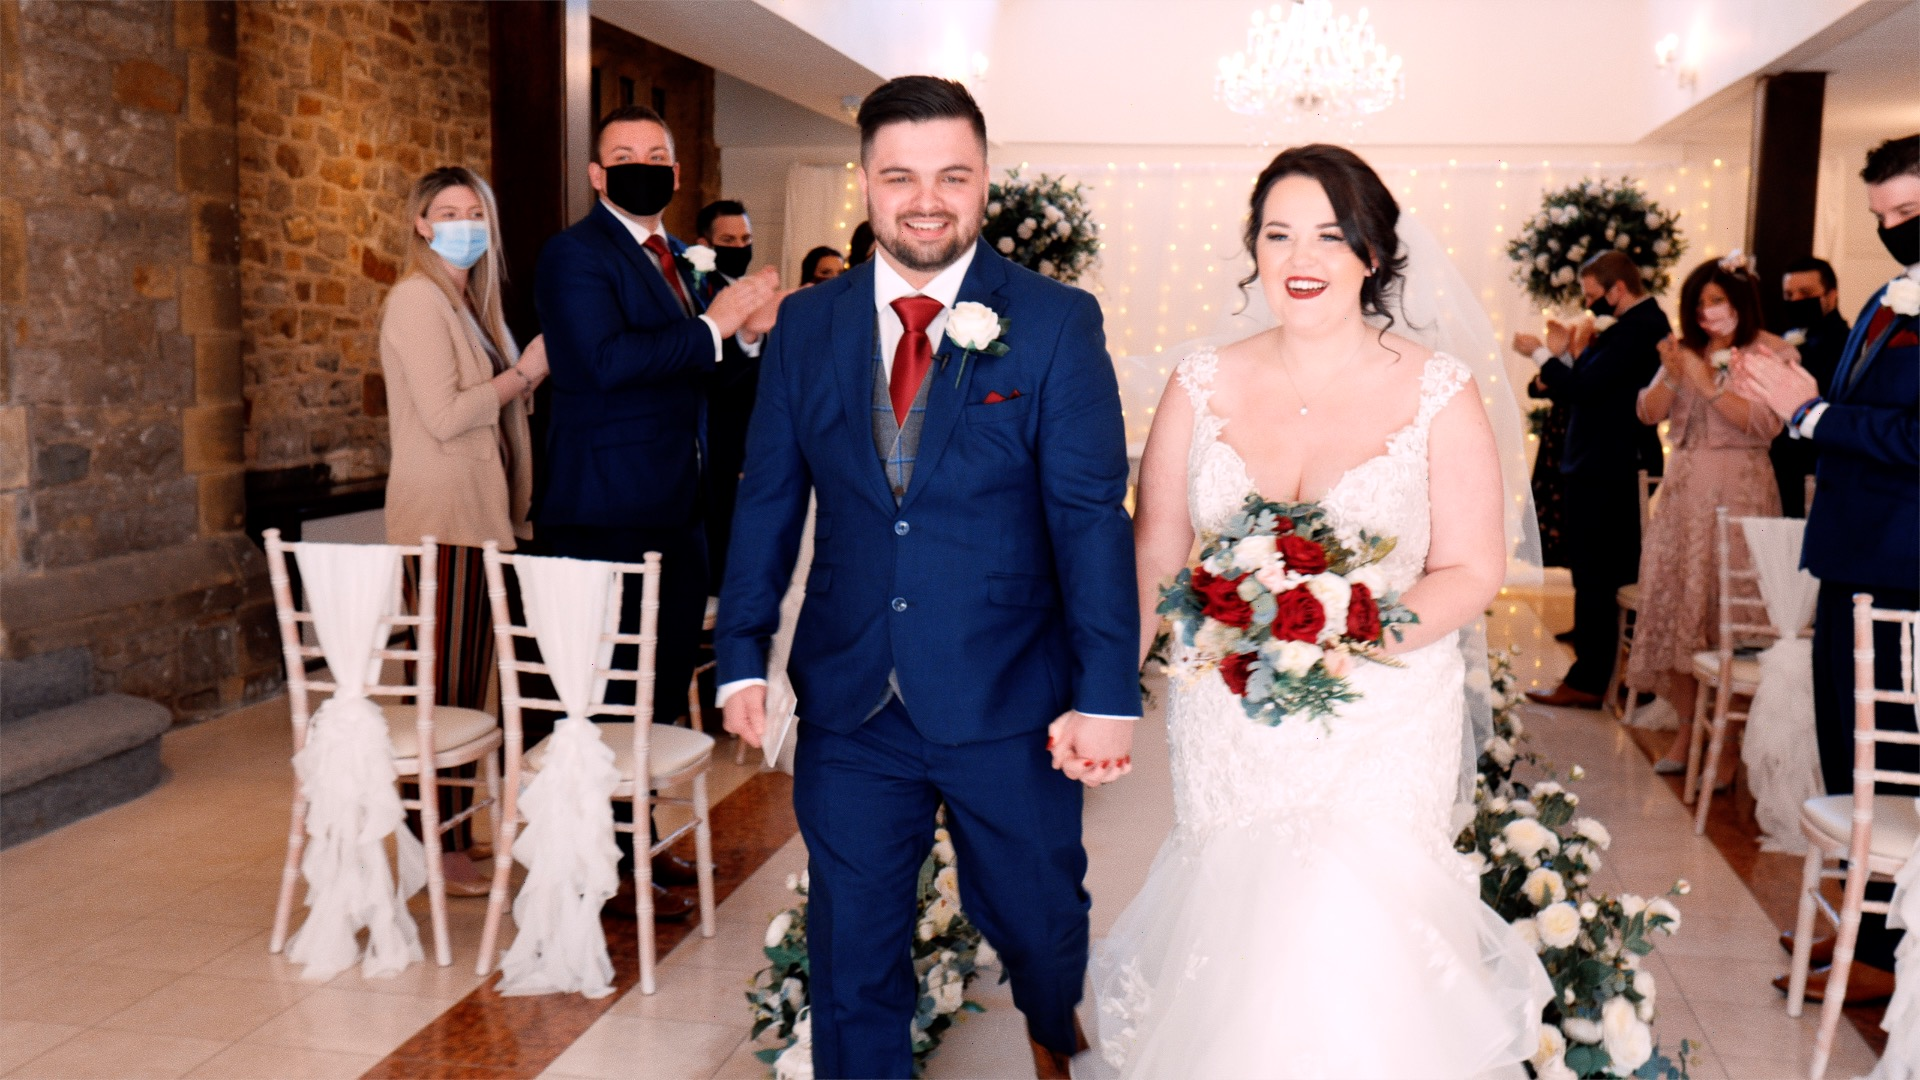 Ryan & Lacey's Wedding Film Highlights at Stirk House, Clitheroe